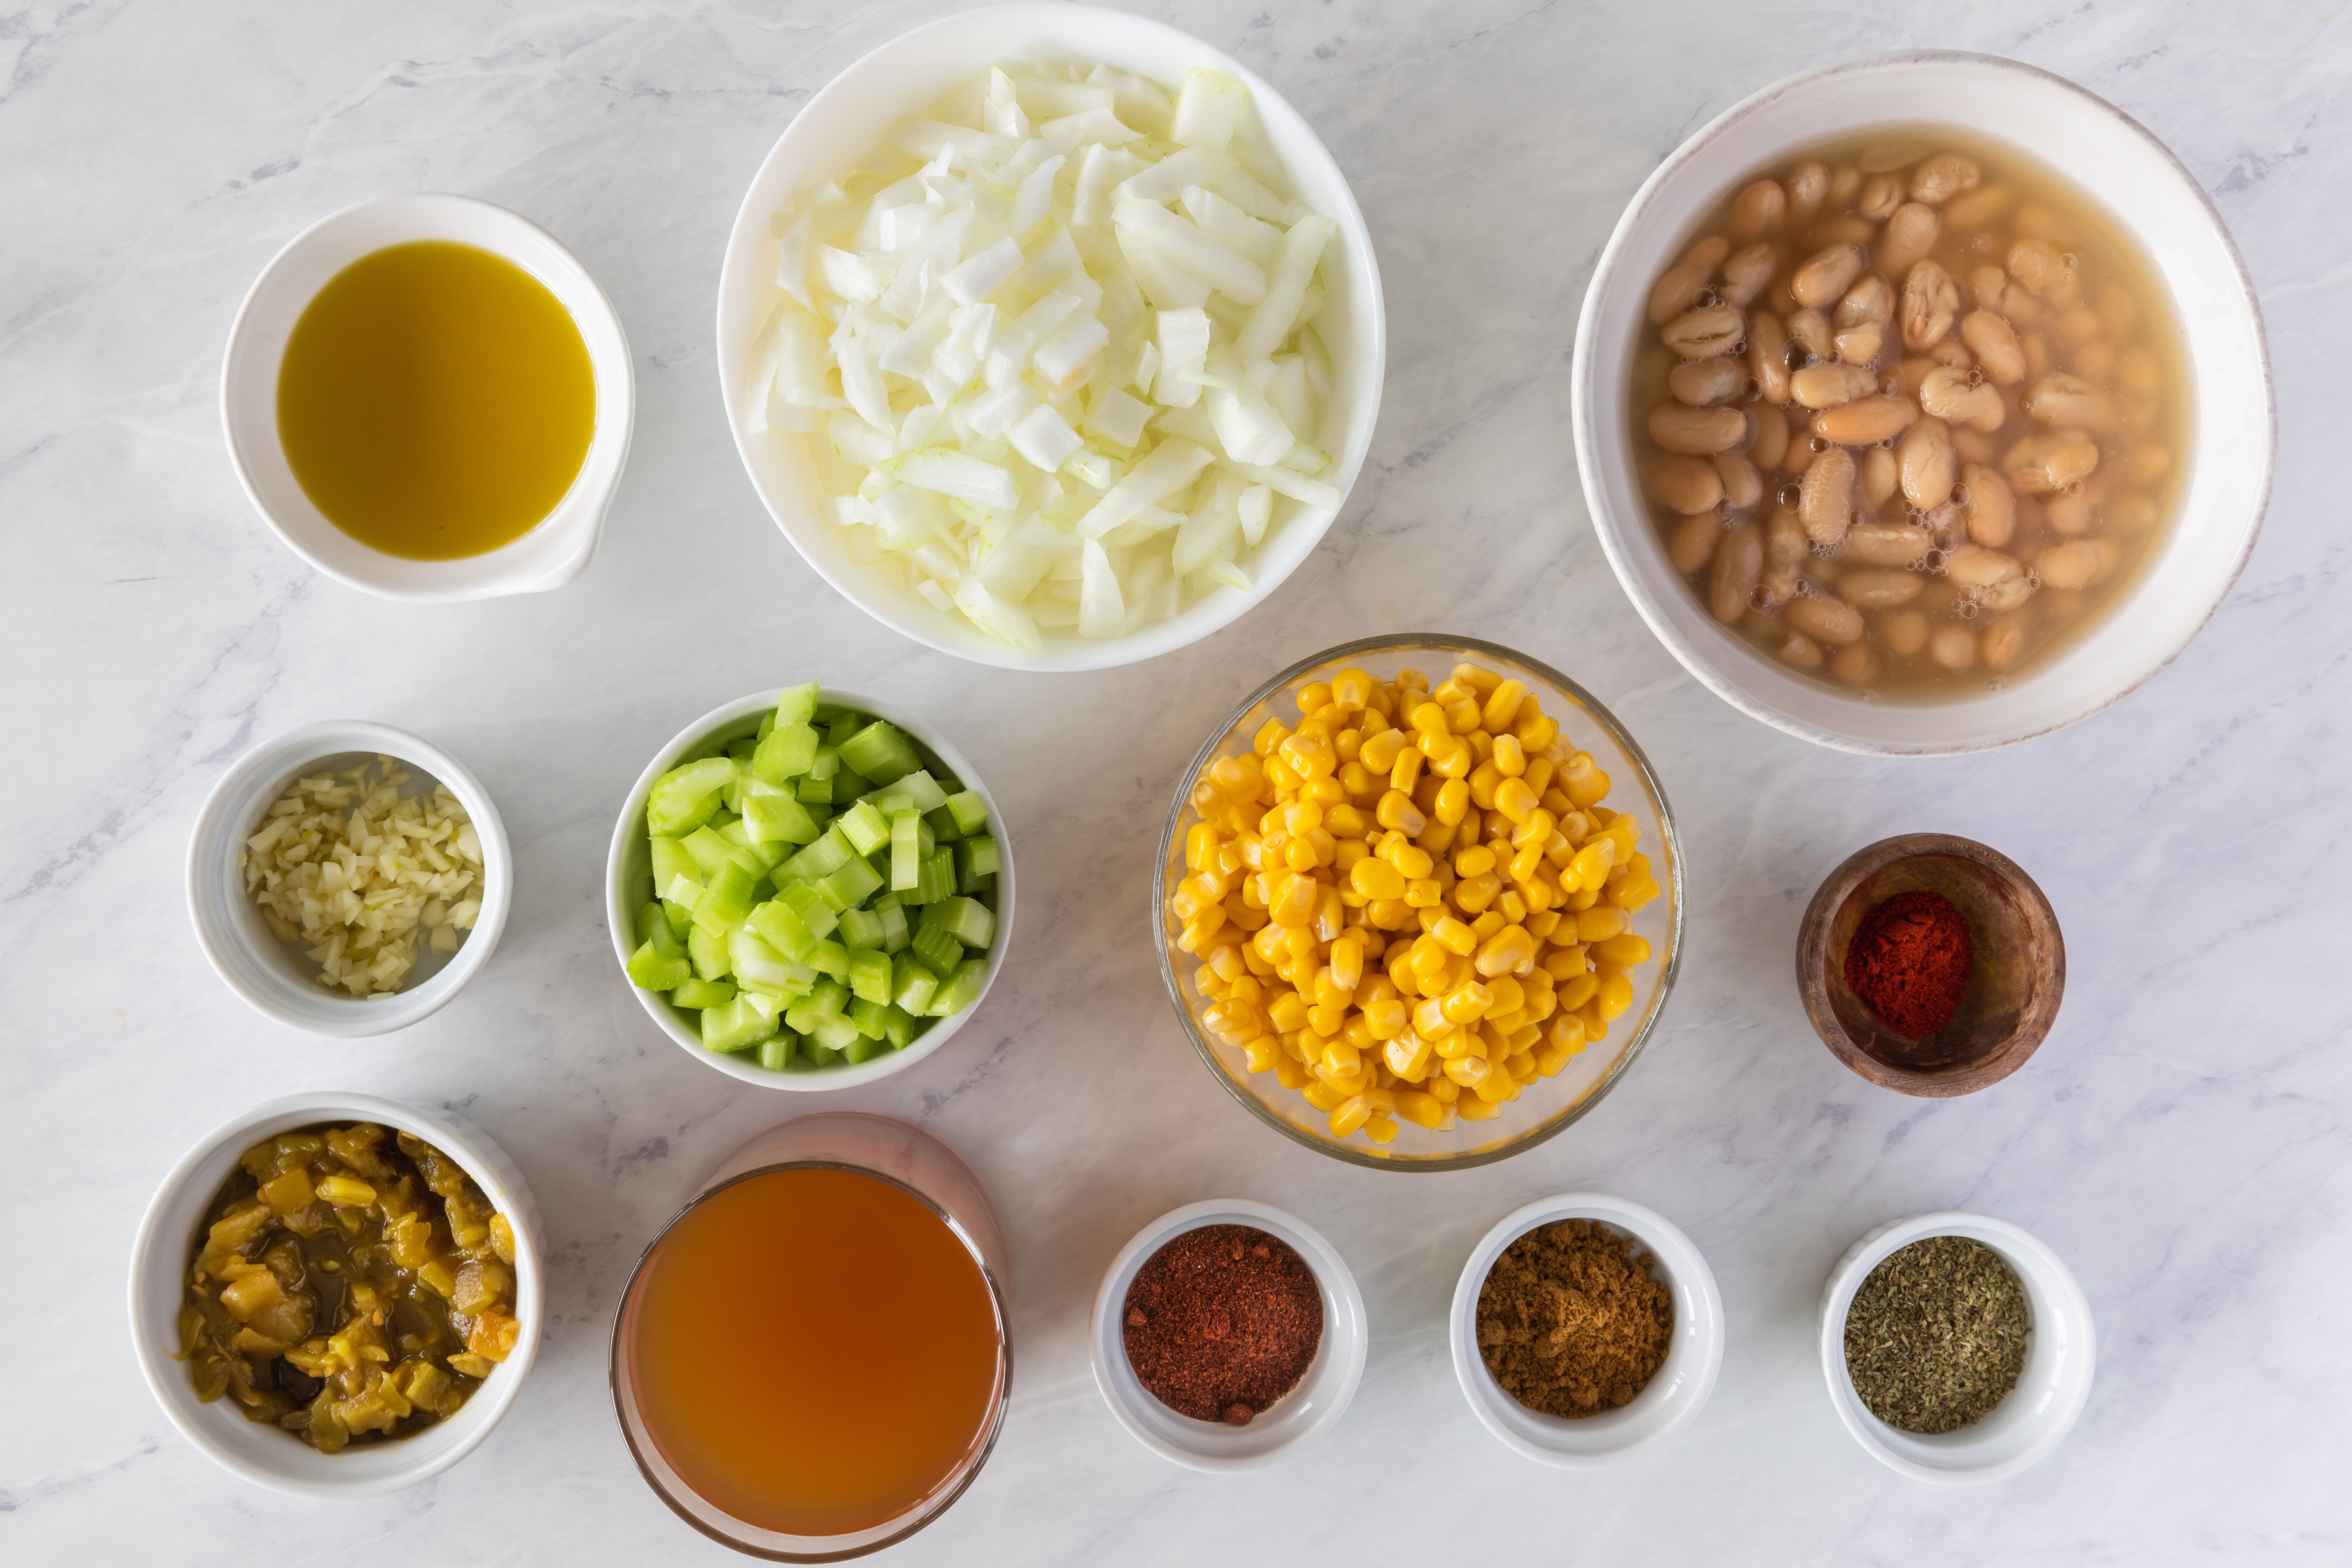 Ingredients for white bean chili